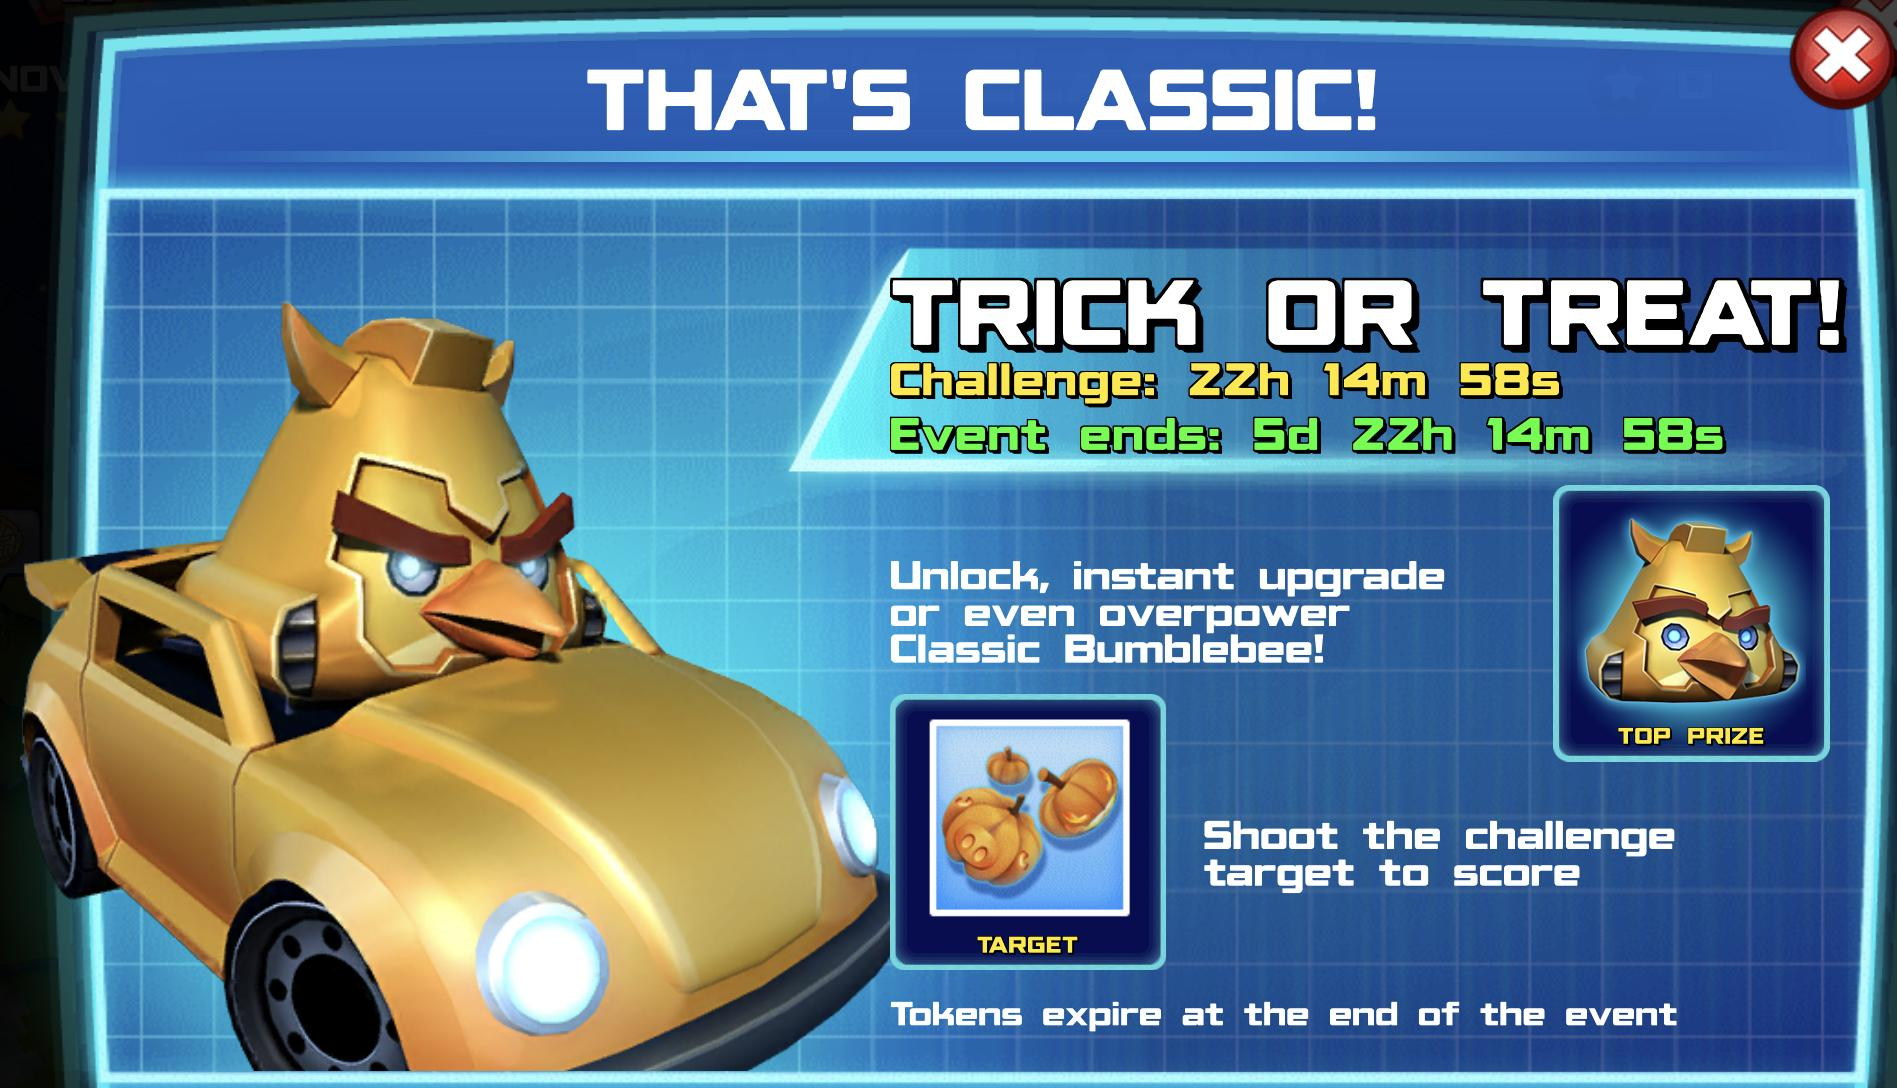 The event banner for That's Classic